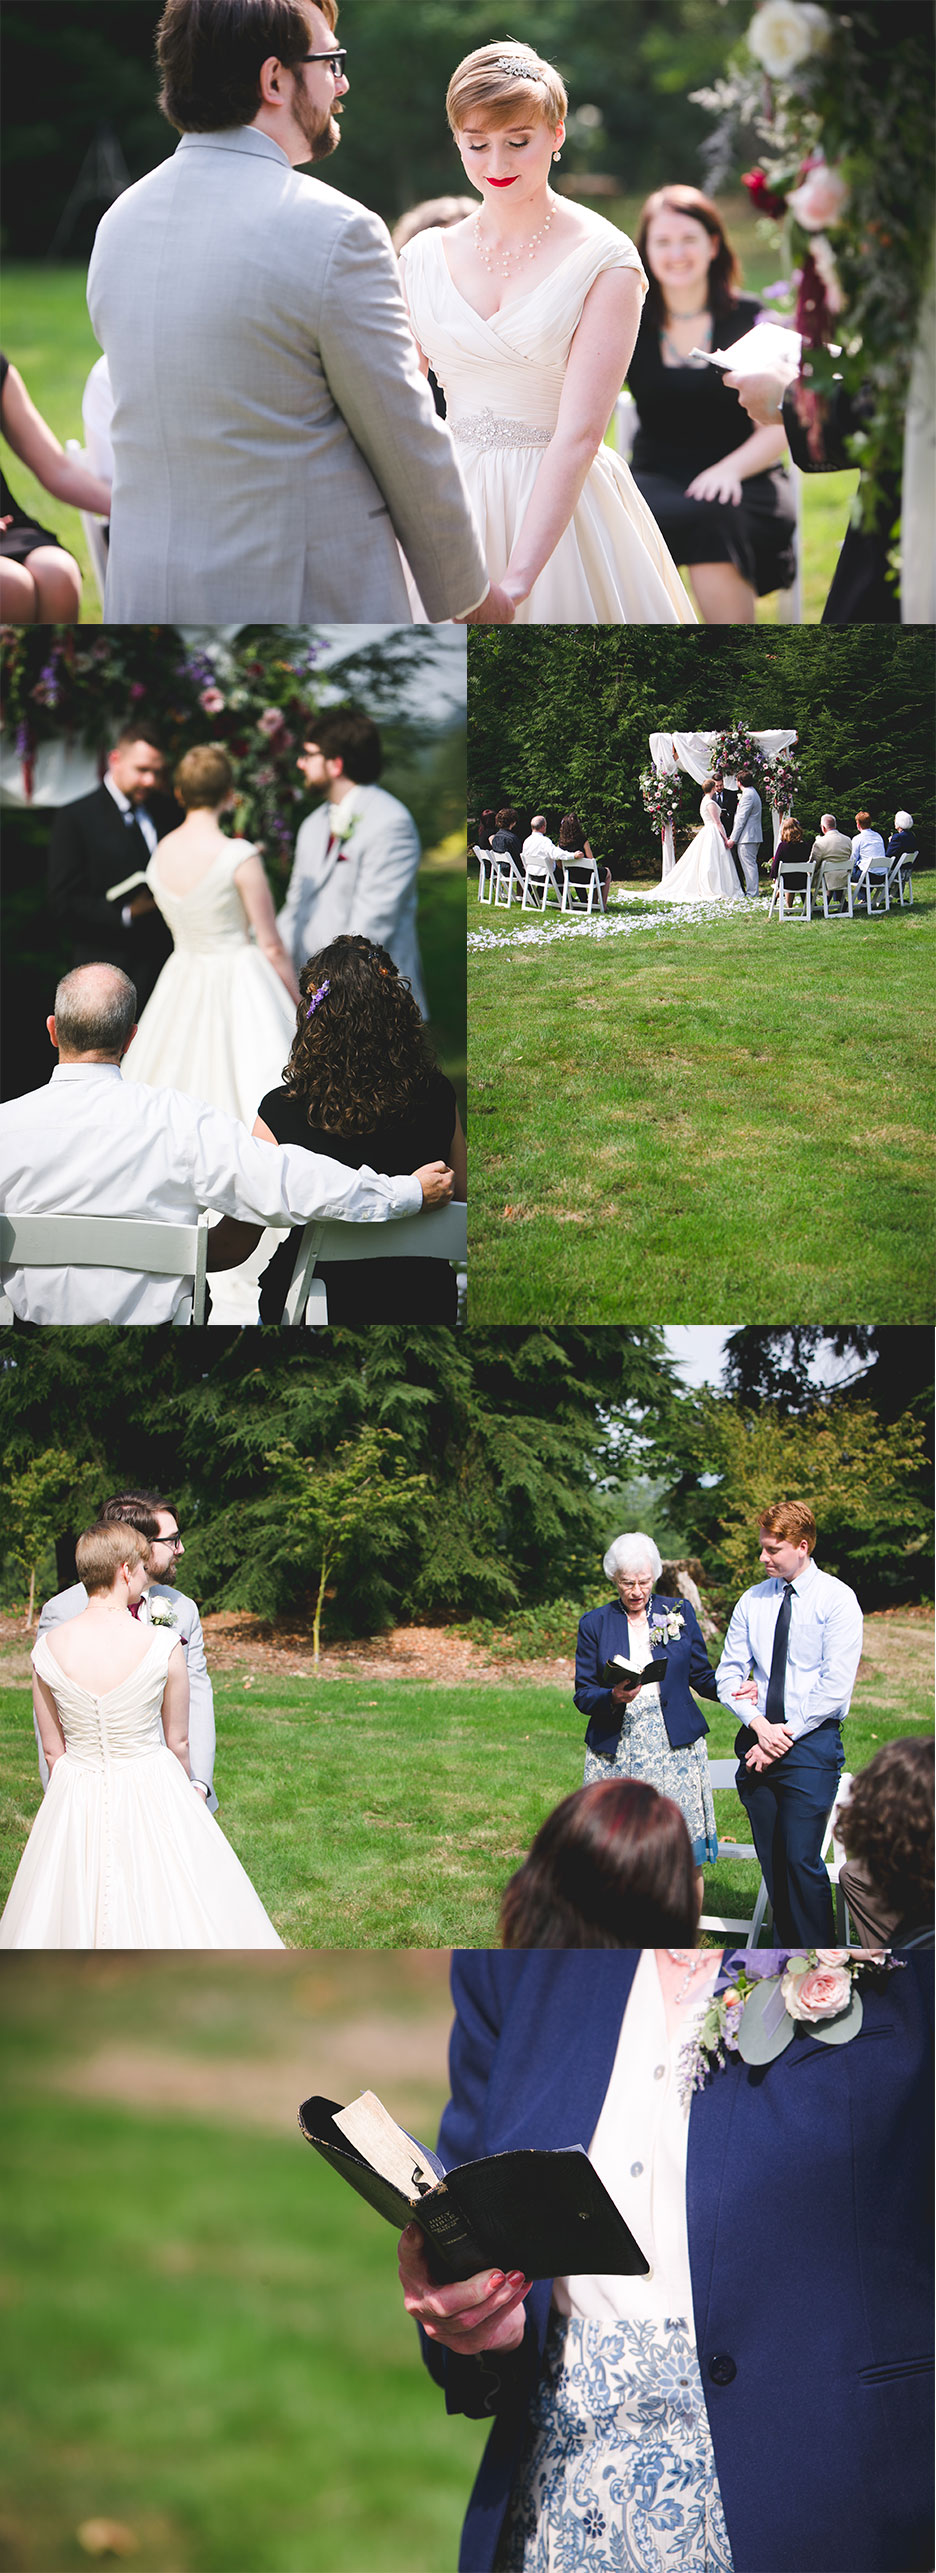 PNW Weddings by Michelle Newell Photography